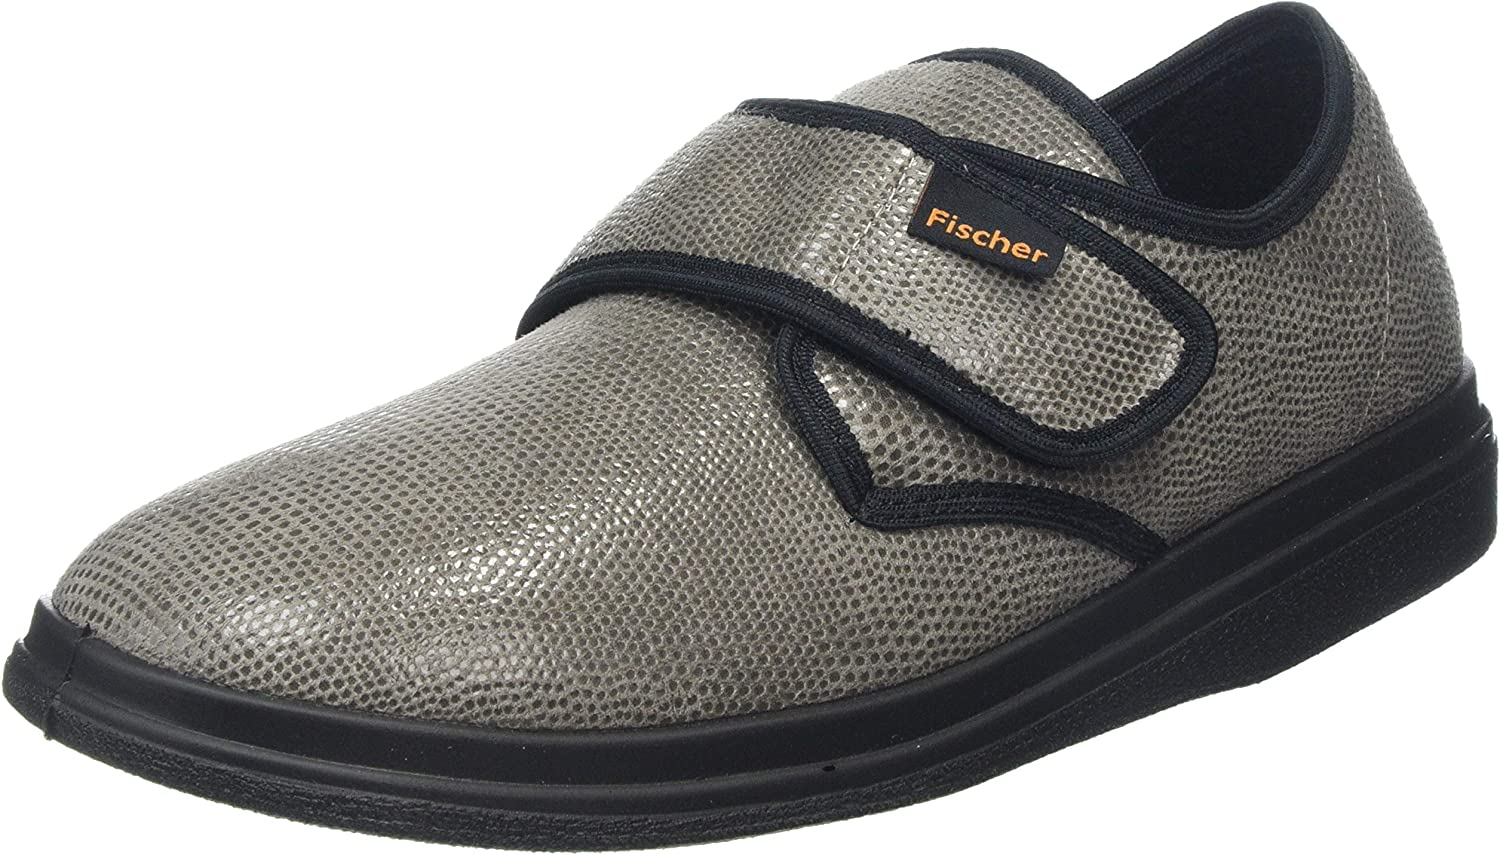 fischer Ortho, Chaussons Bas Mixte Adulte Gris Grau 666